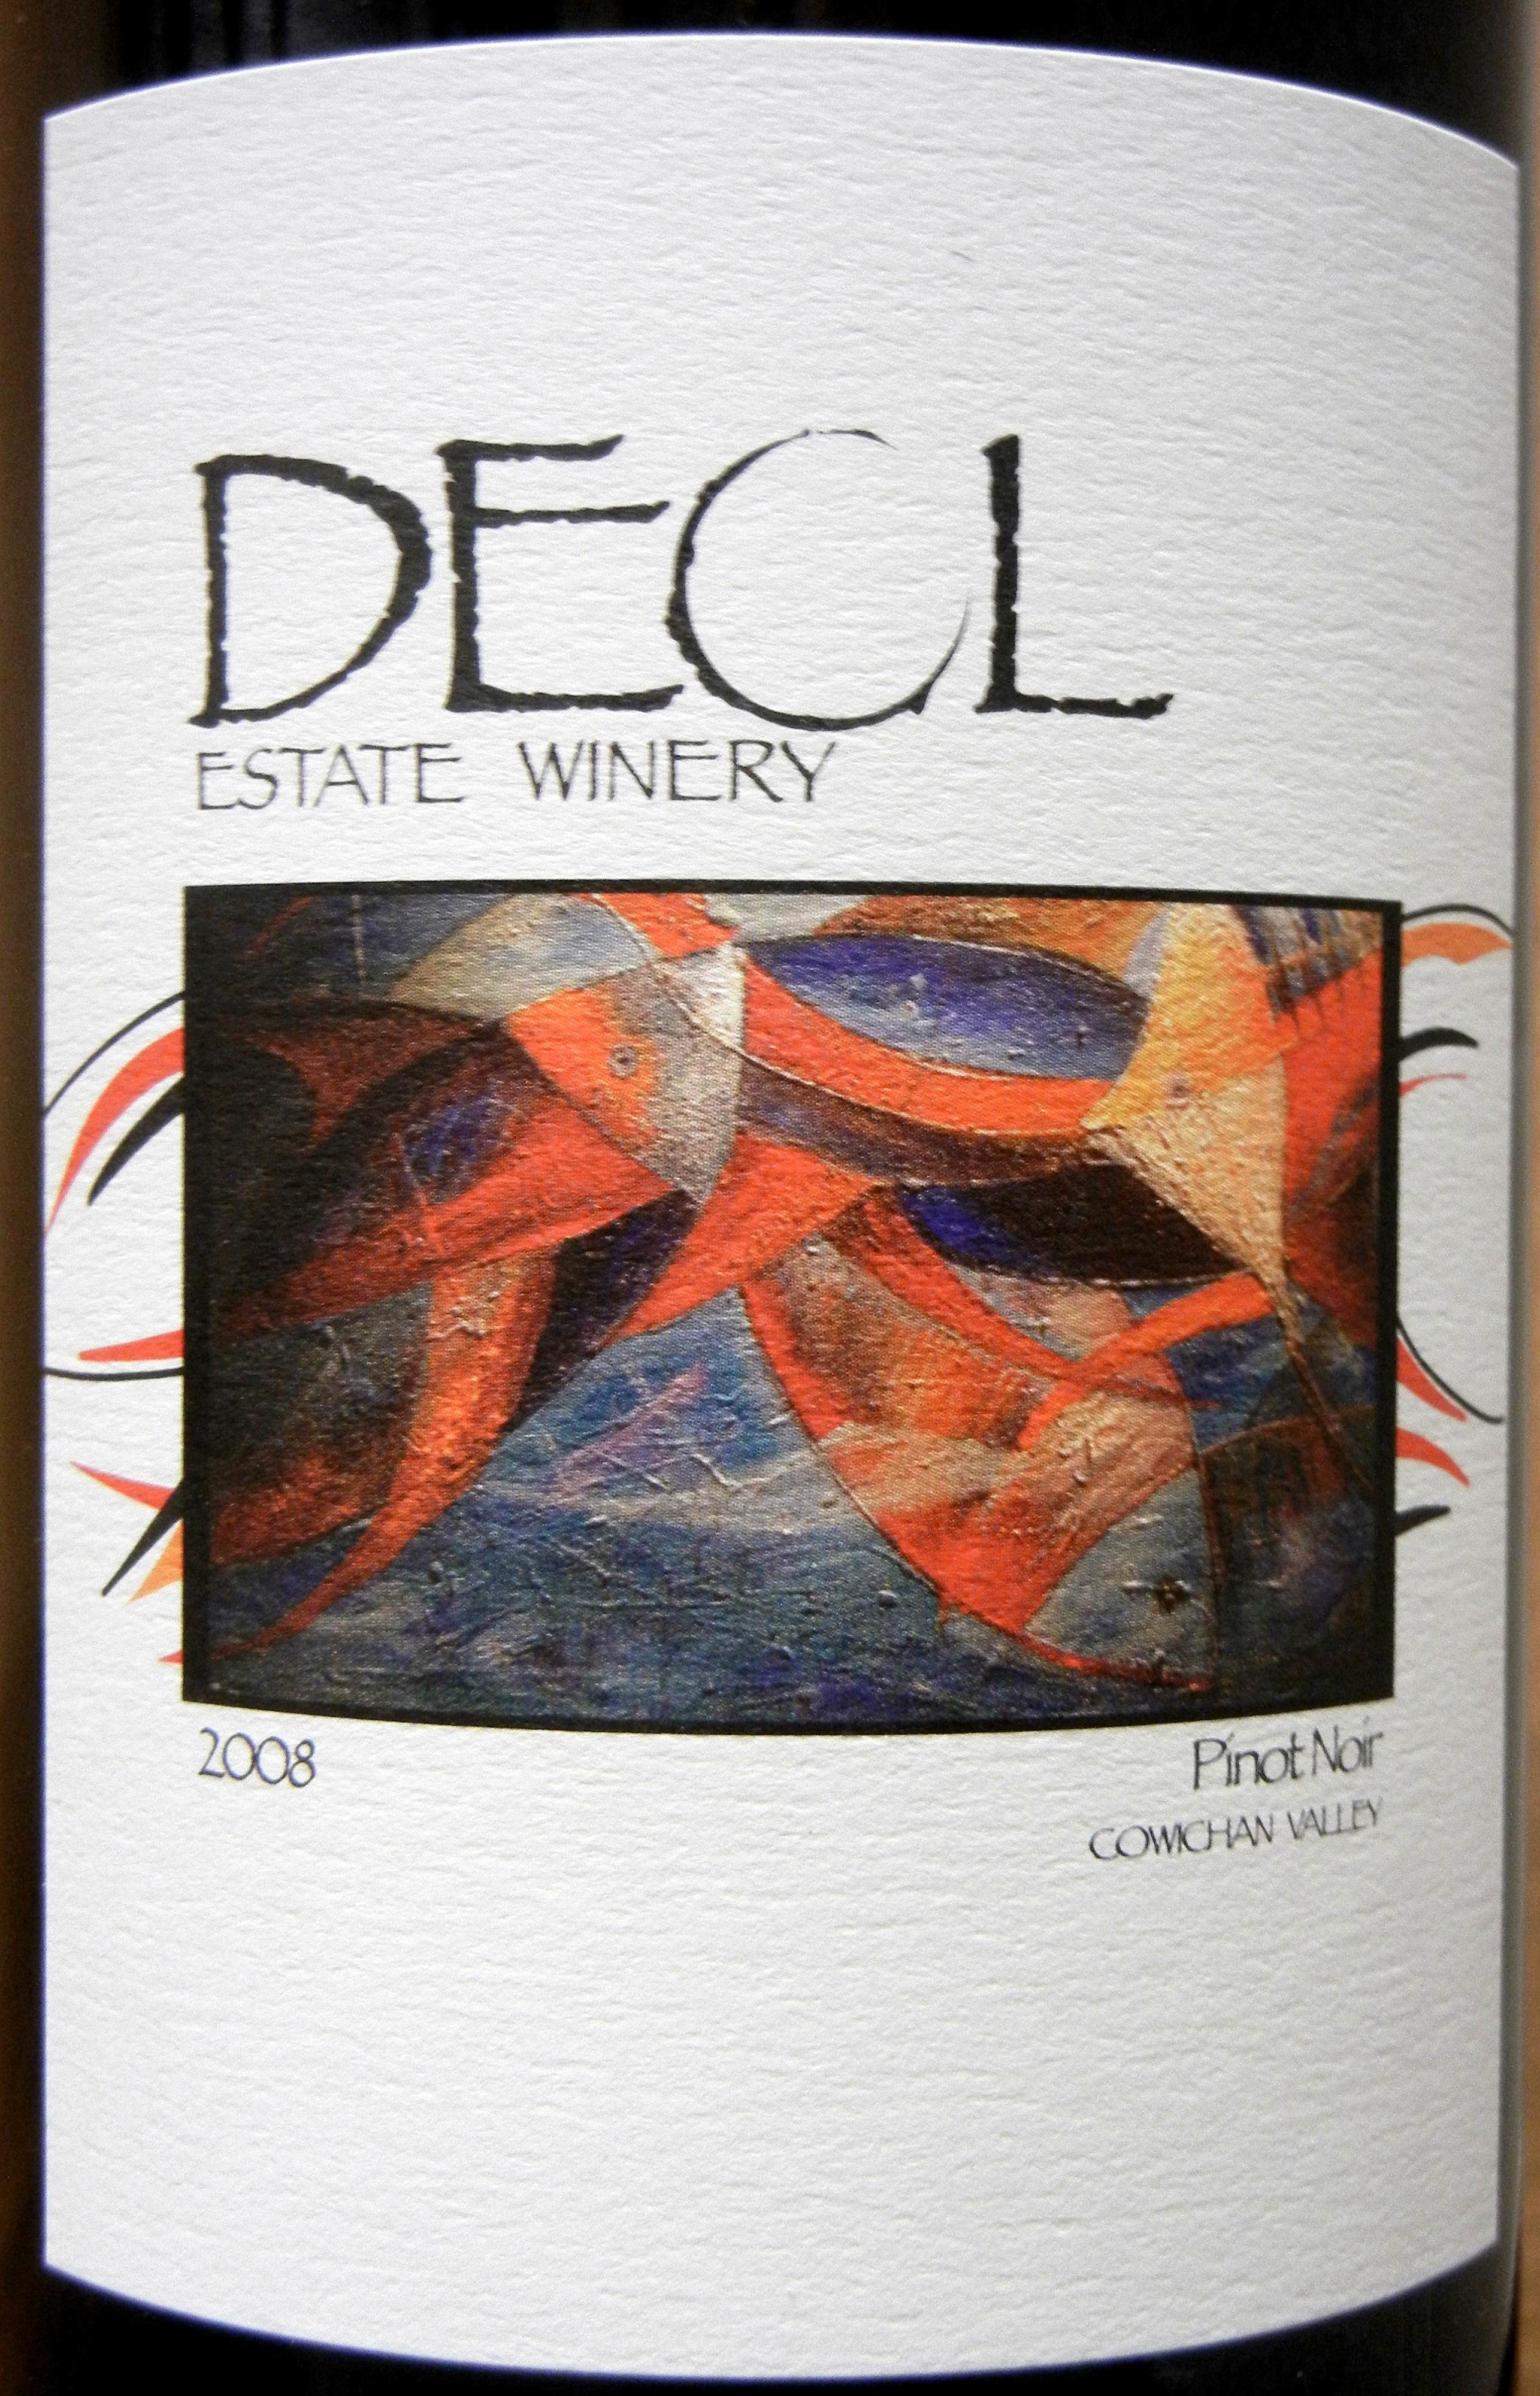 Deol Pinot Noir 2008 Label - BC Pinot Noir Tasting Review 16